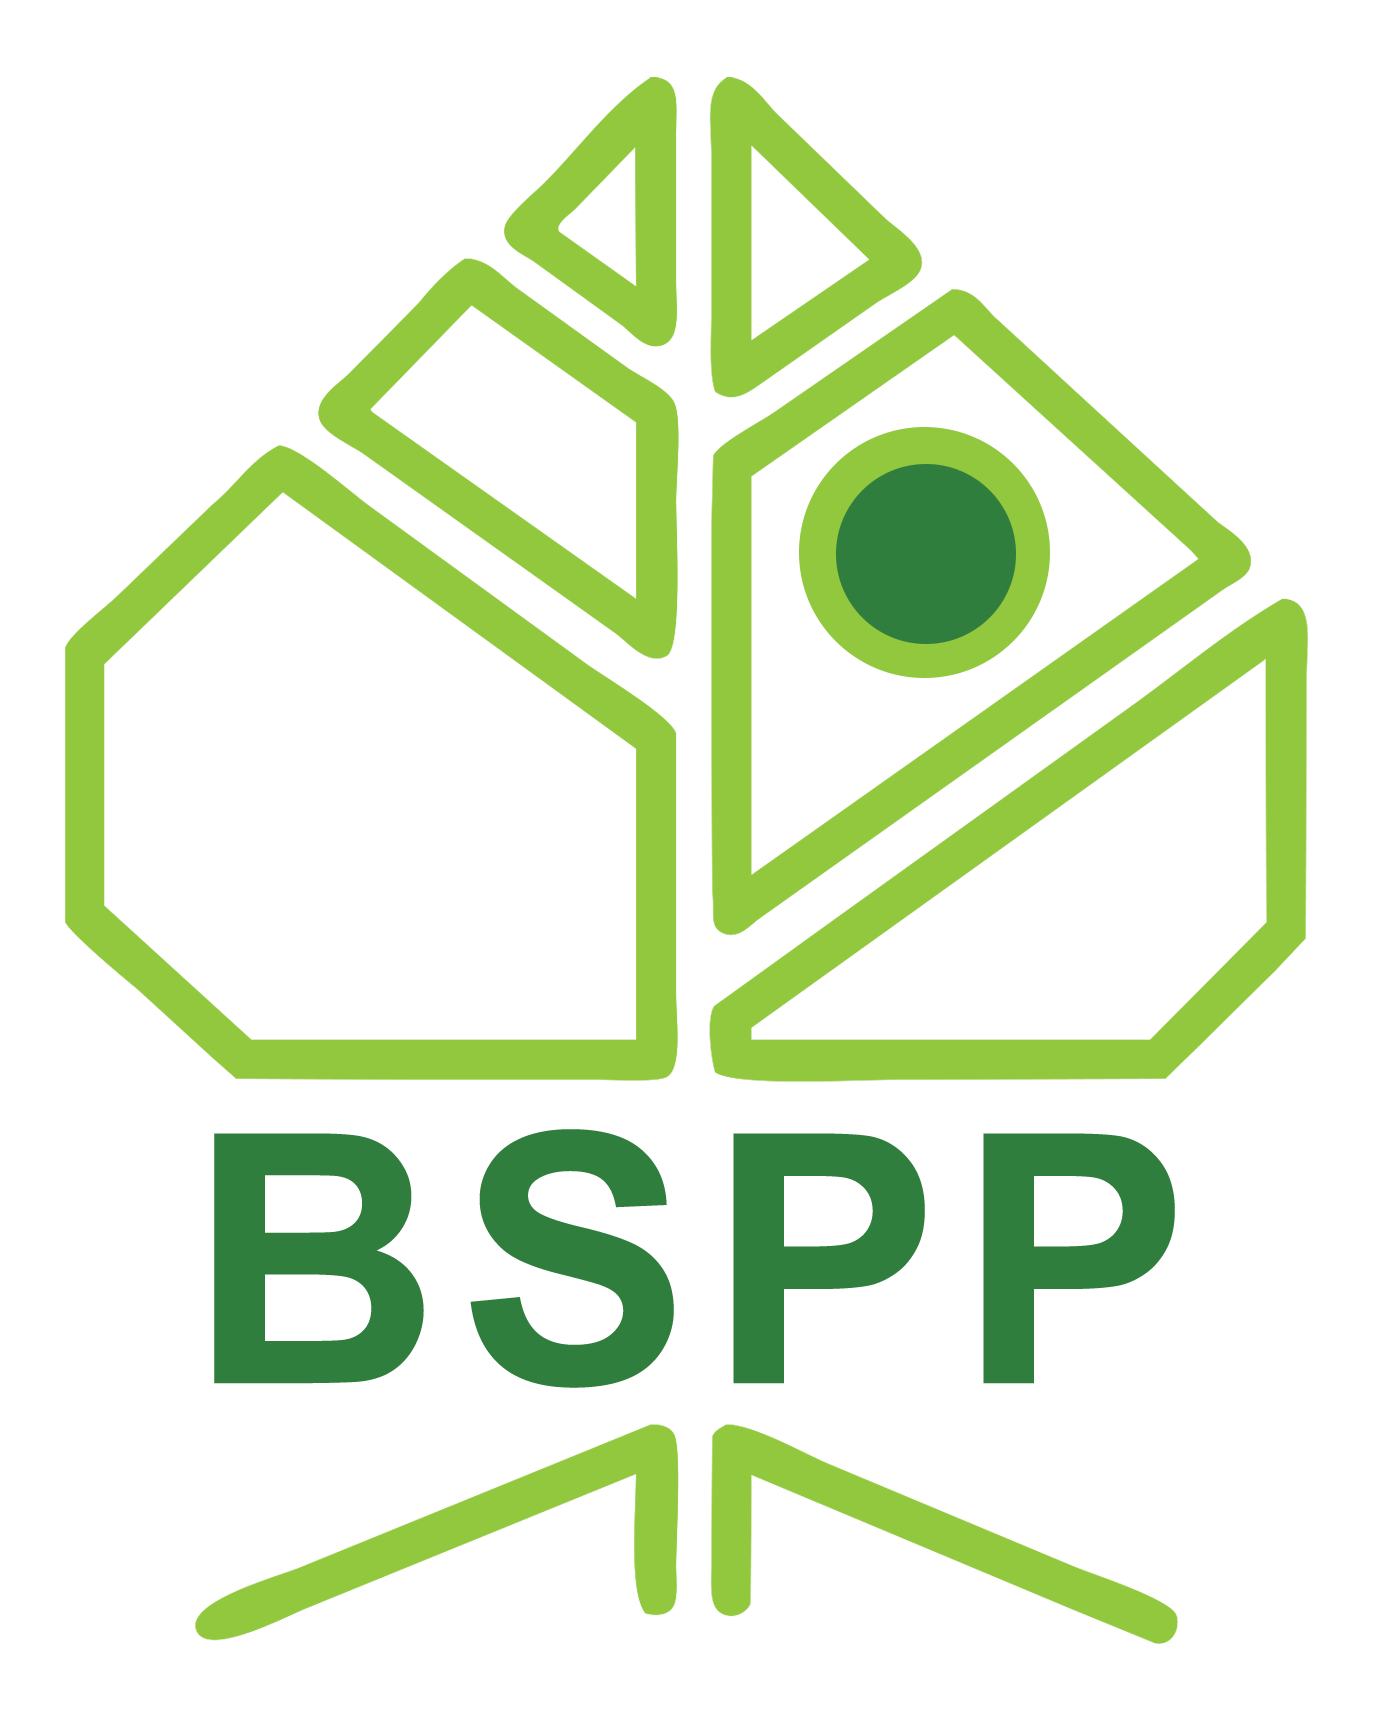 BSPP – The British Society for Plant Pathology